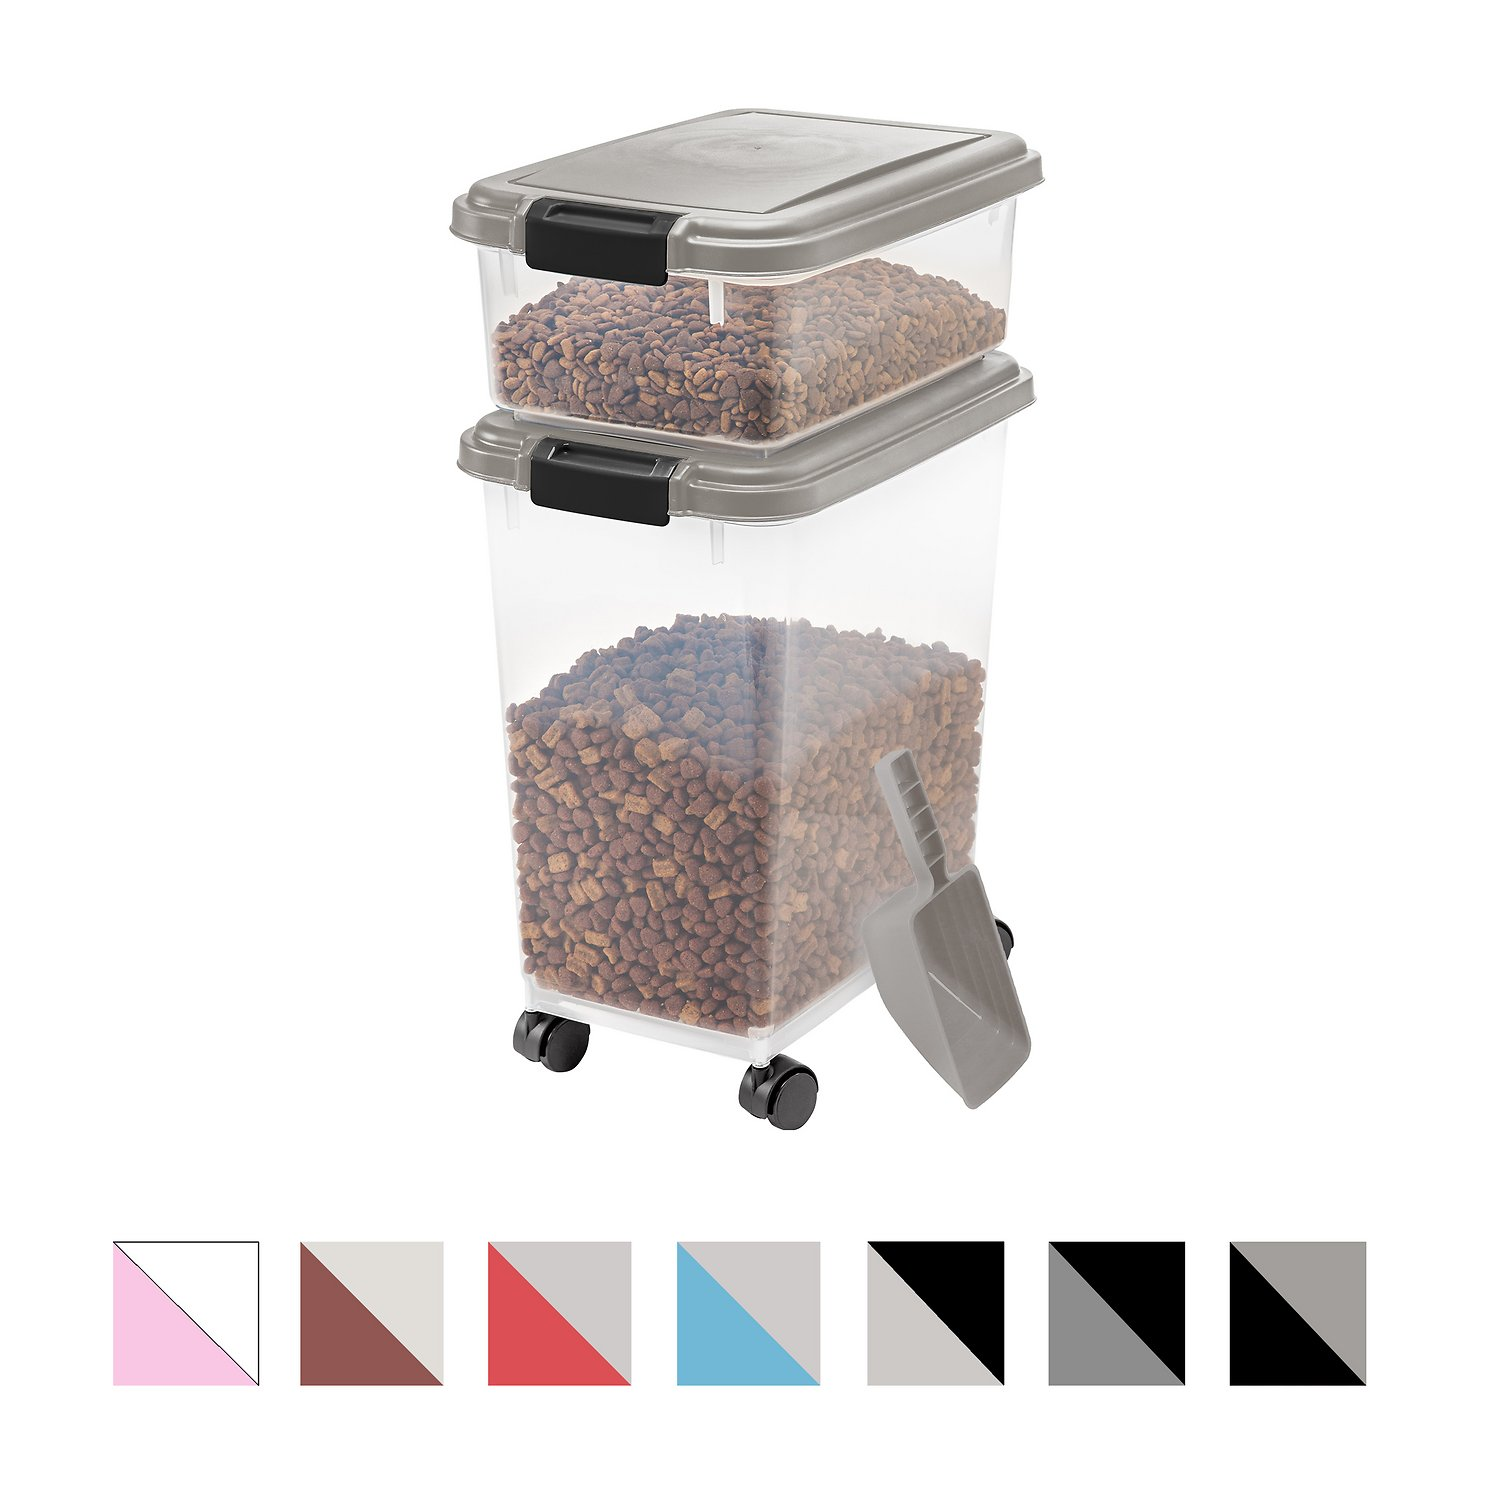 IRIS Airtight Food Storage Container Scoop Combo ChromeBlack